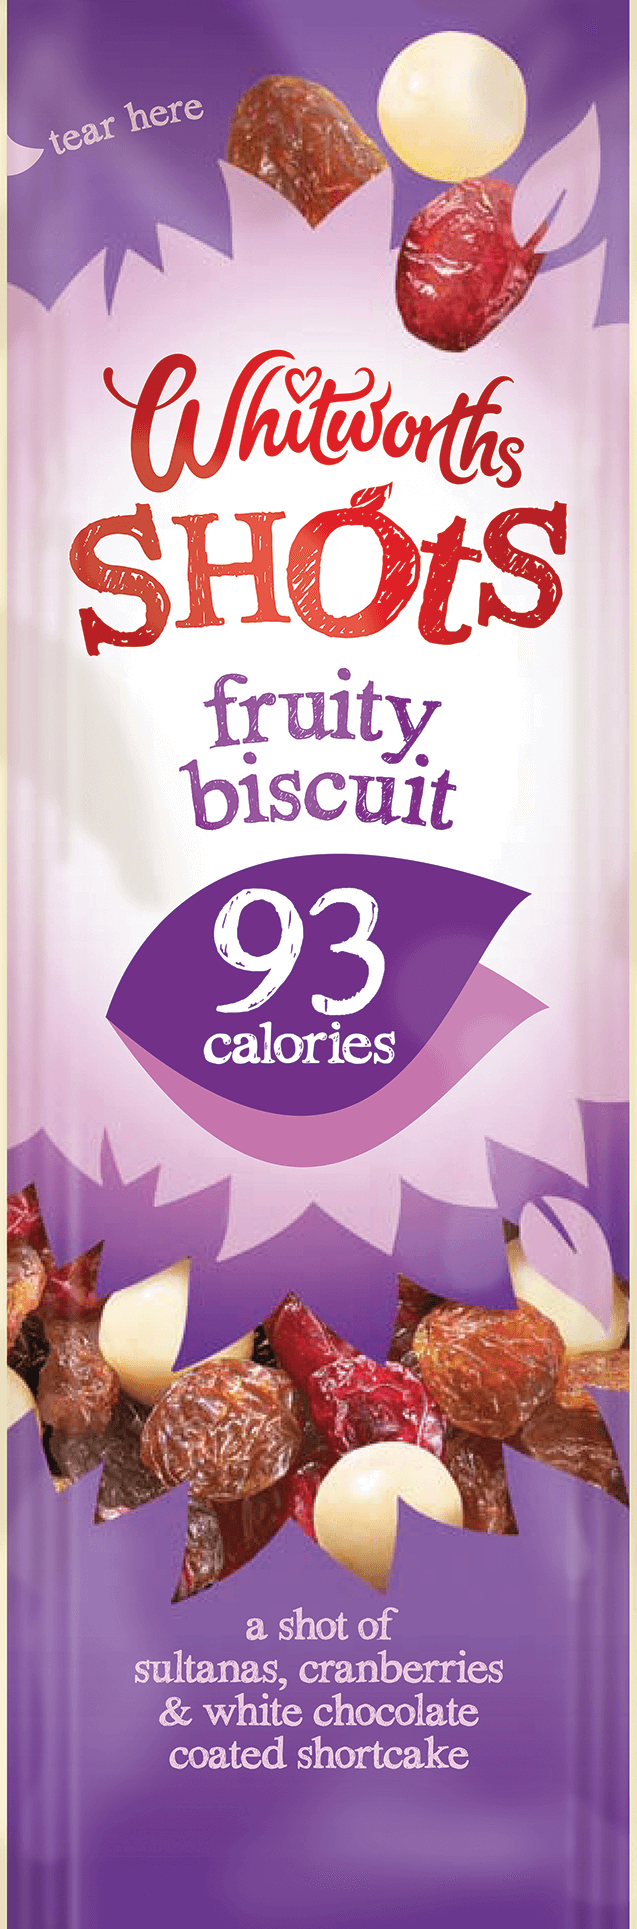 Whitworths Shots - Fruity Biscuit (93 calories)